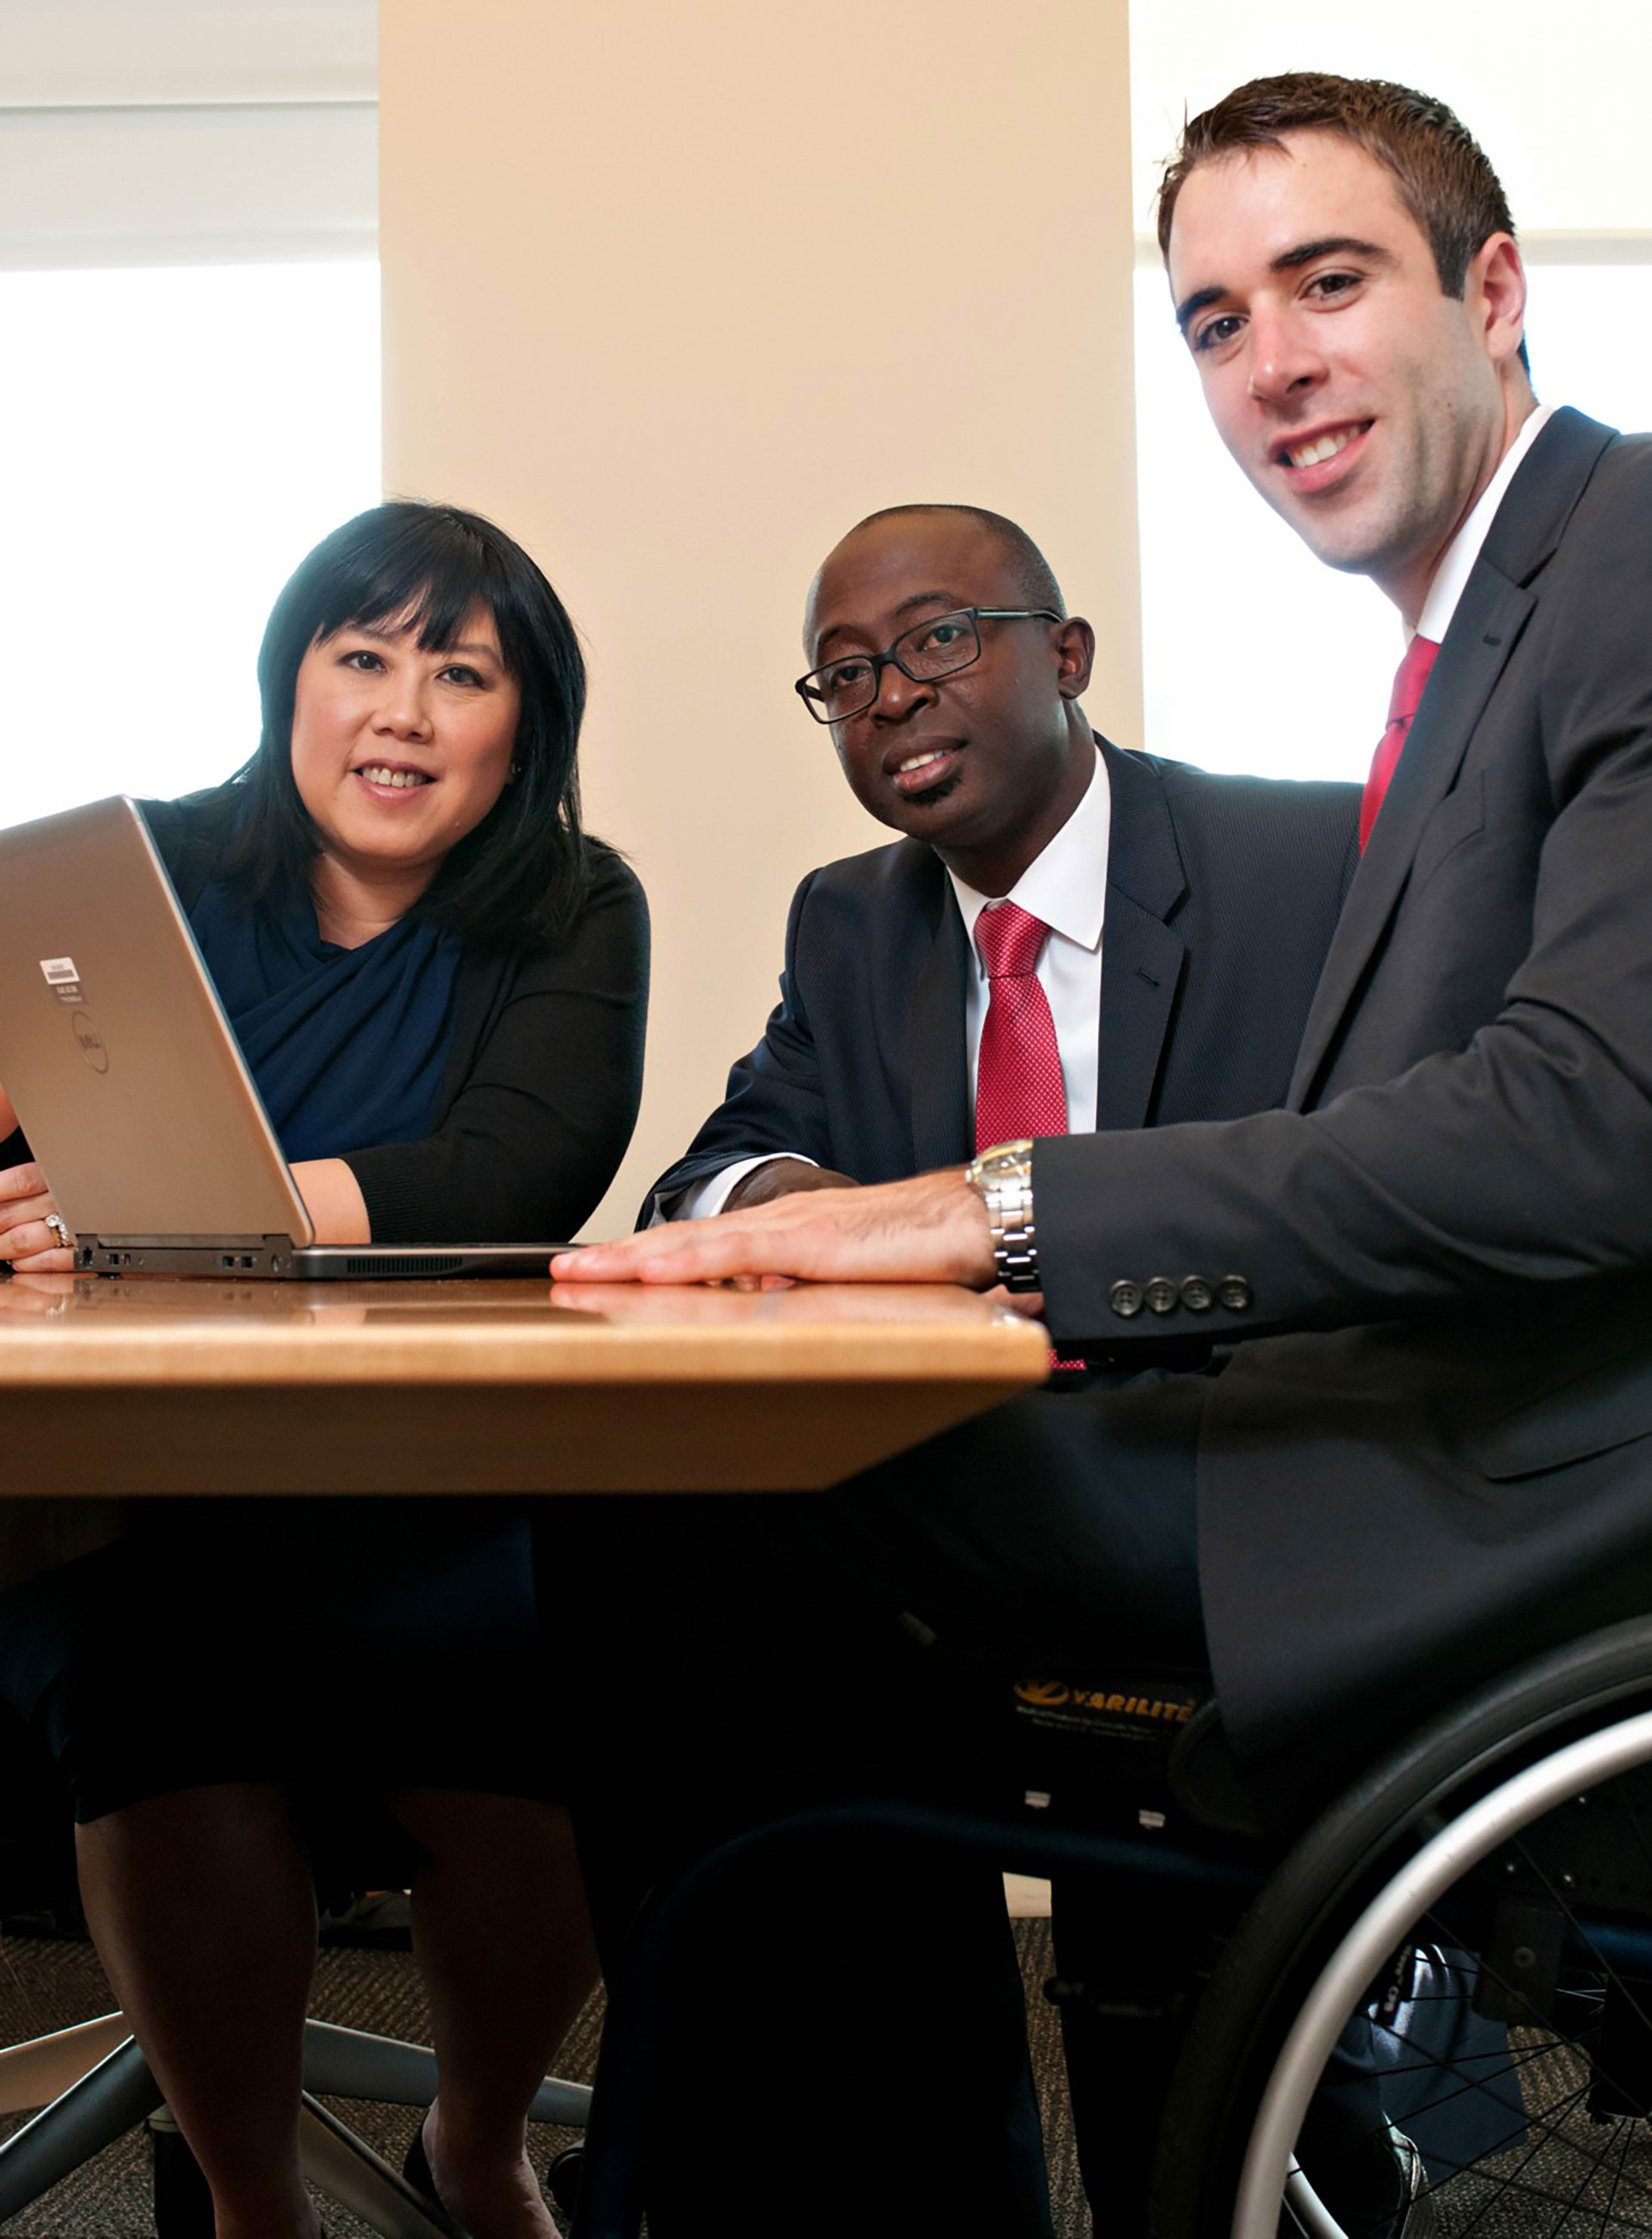 diverse business professionals working together